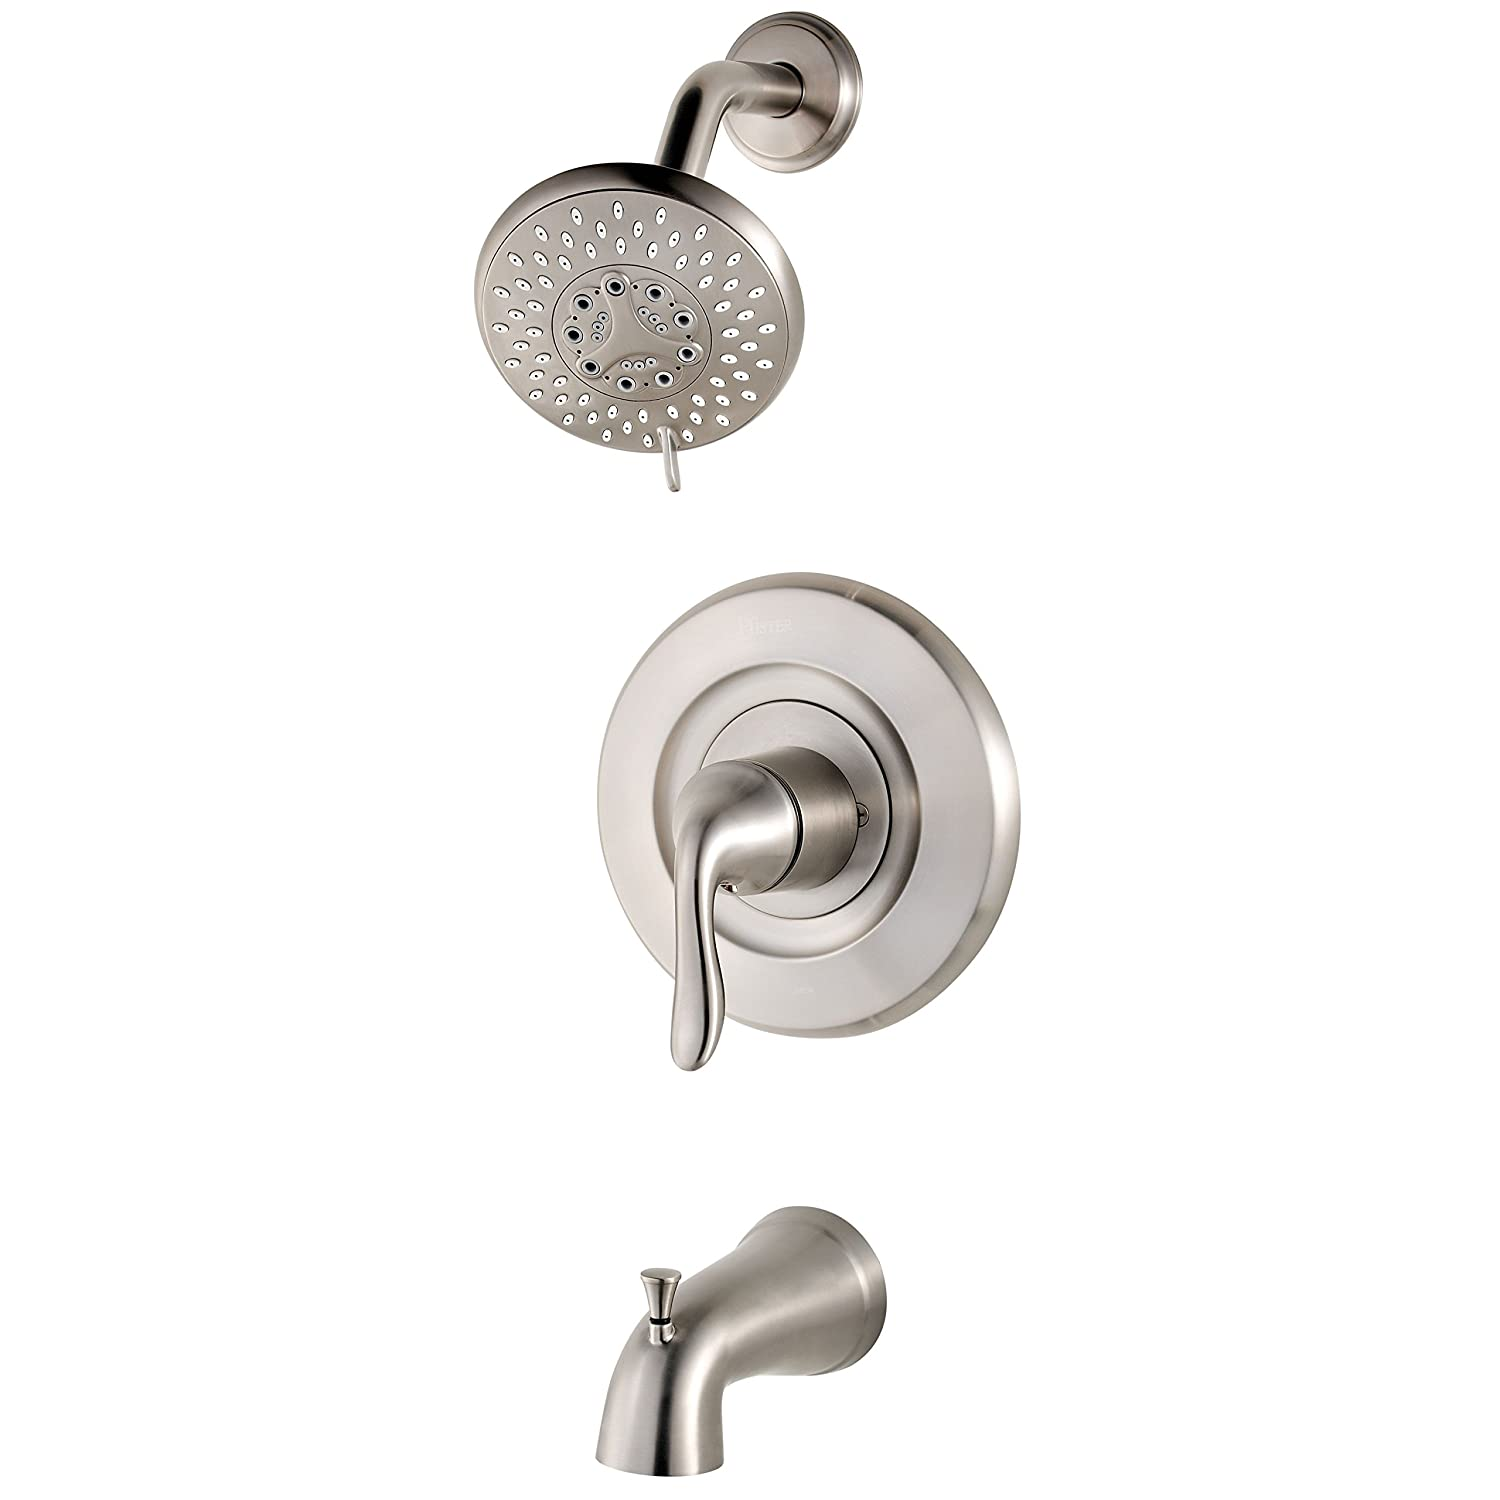 ace moen acrylic handles index sink handle jsp and tear knob drop hardware faucet shower product tub